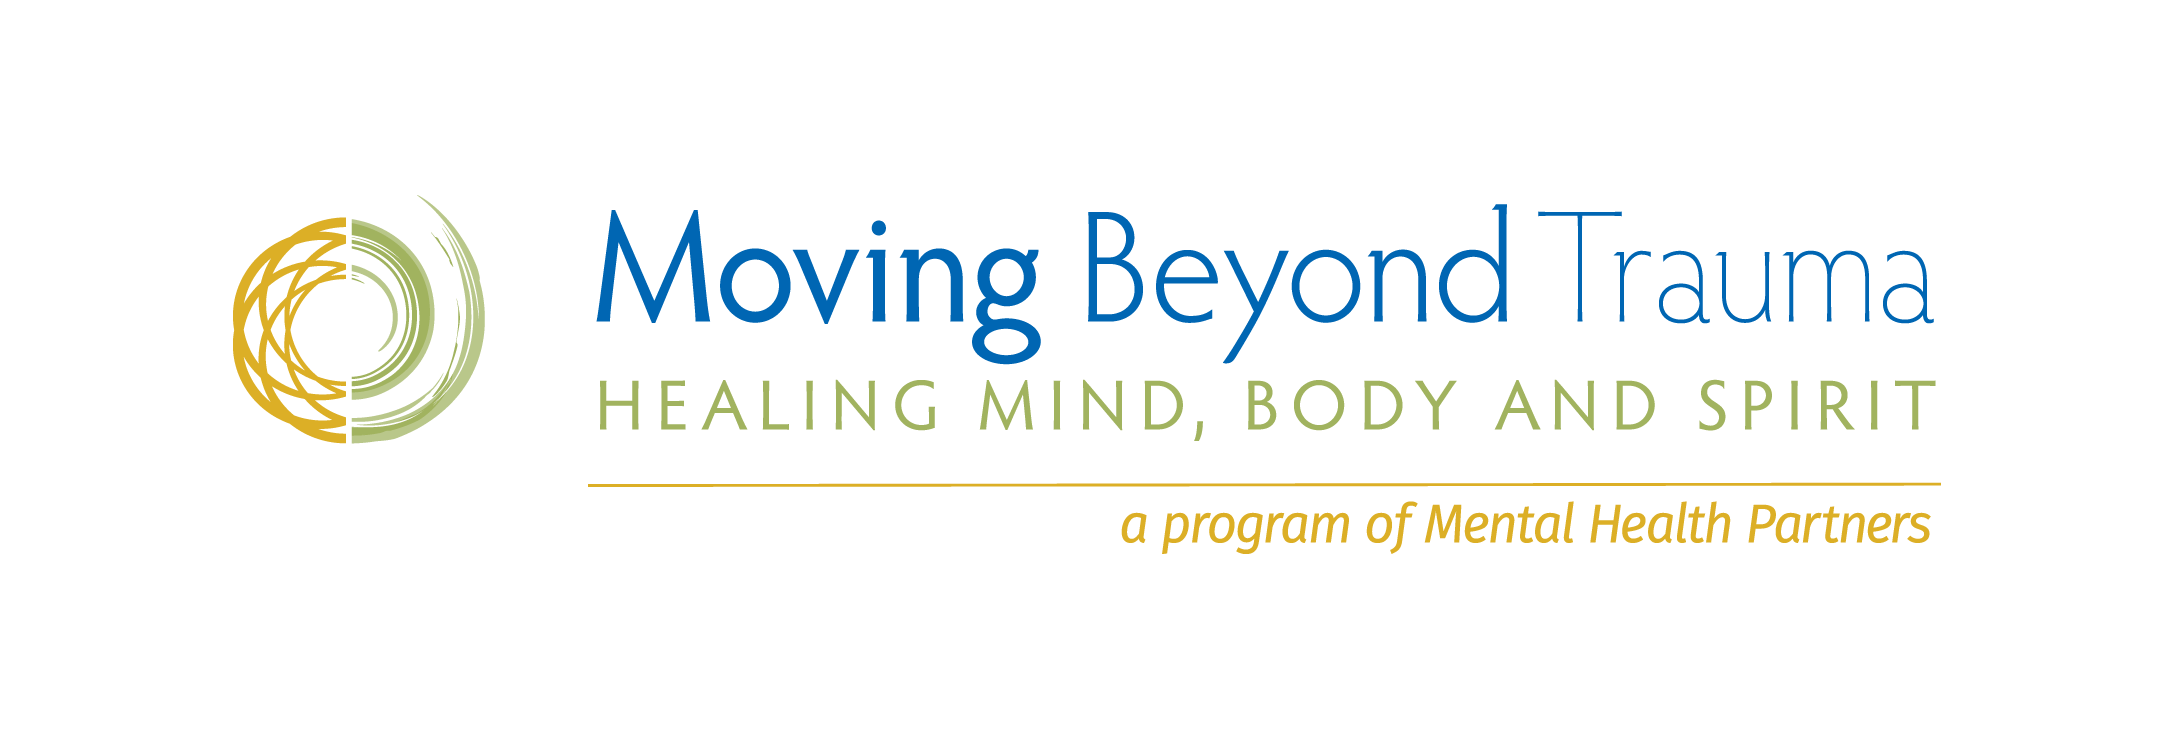 Specialty Moving Beyond Trauma Mental Health Partners